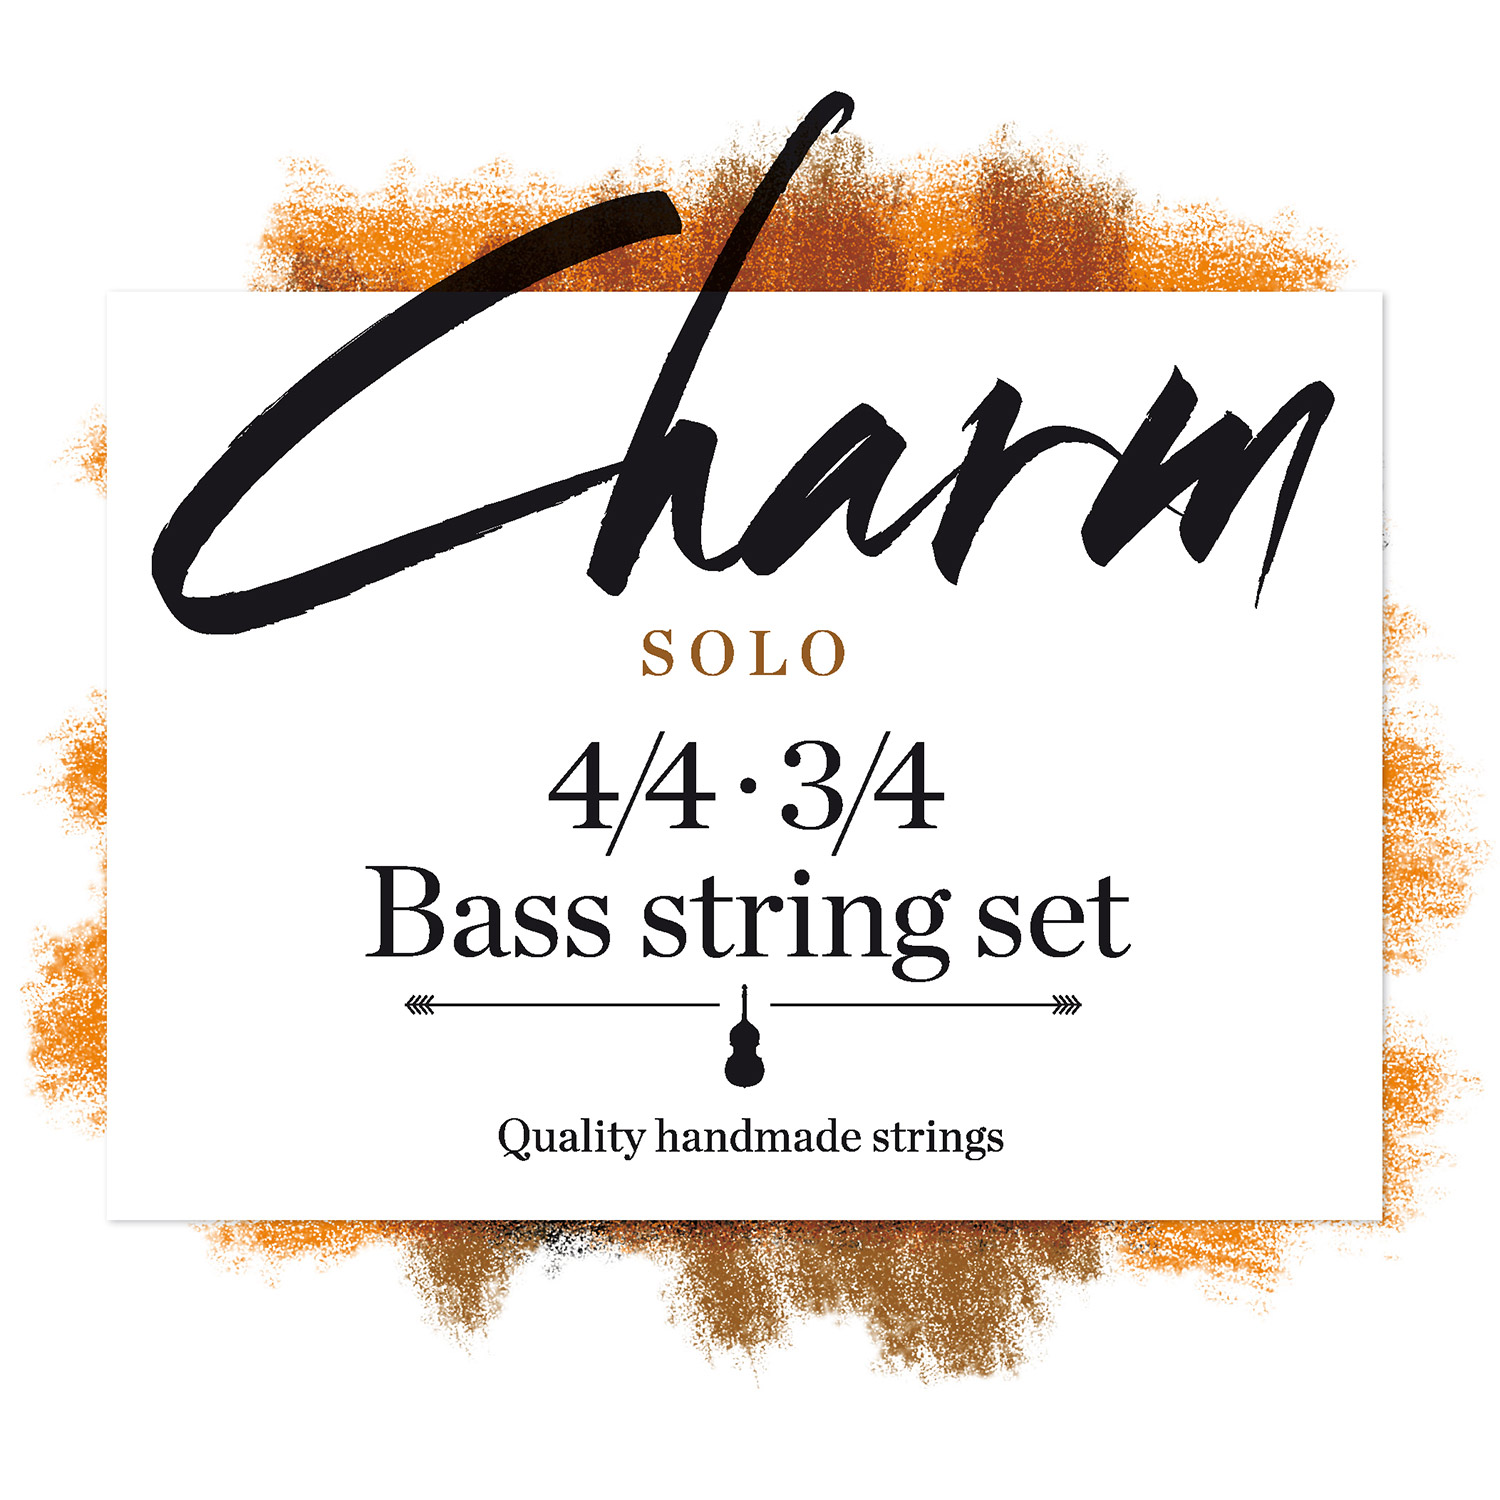 Charm Bass Solo 4/4 & 3/4